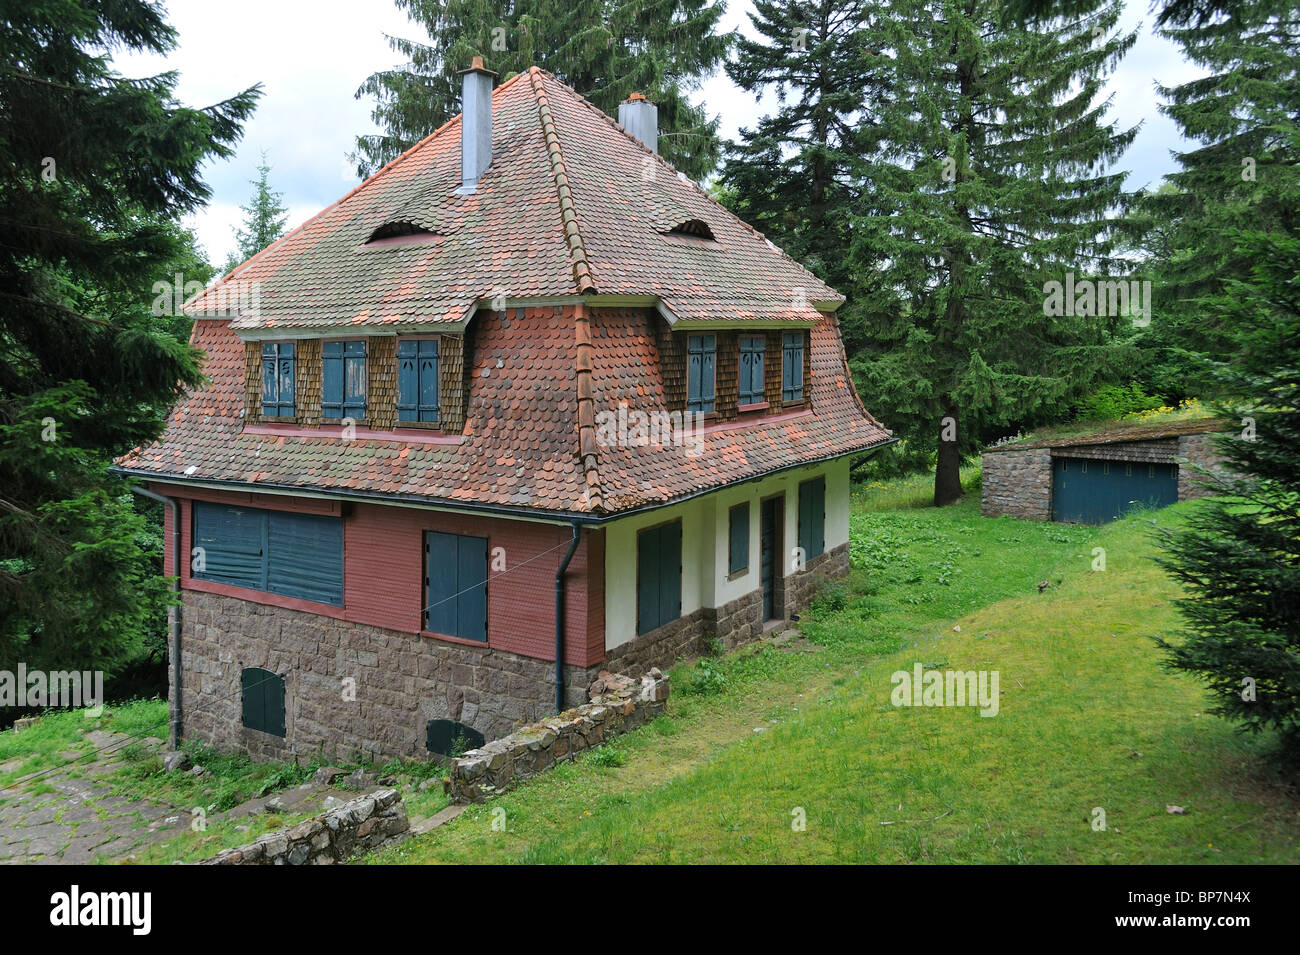 Villa Of Commandant Kramer At Natzweiler Struthof Only WW2 Concentration Camp By The Nazis On French Territory Alsace France